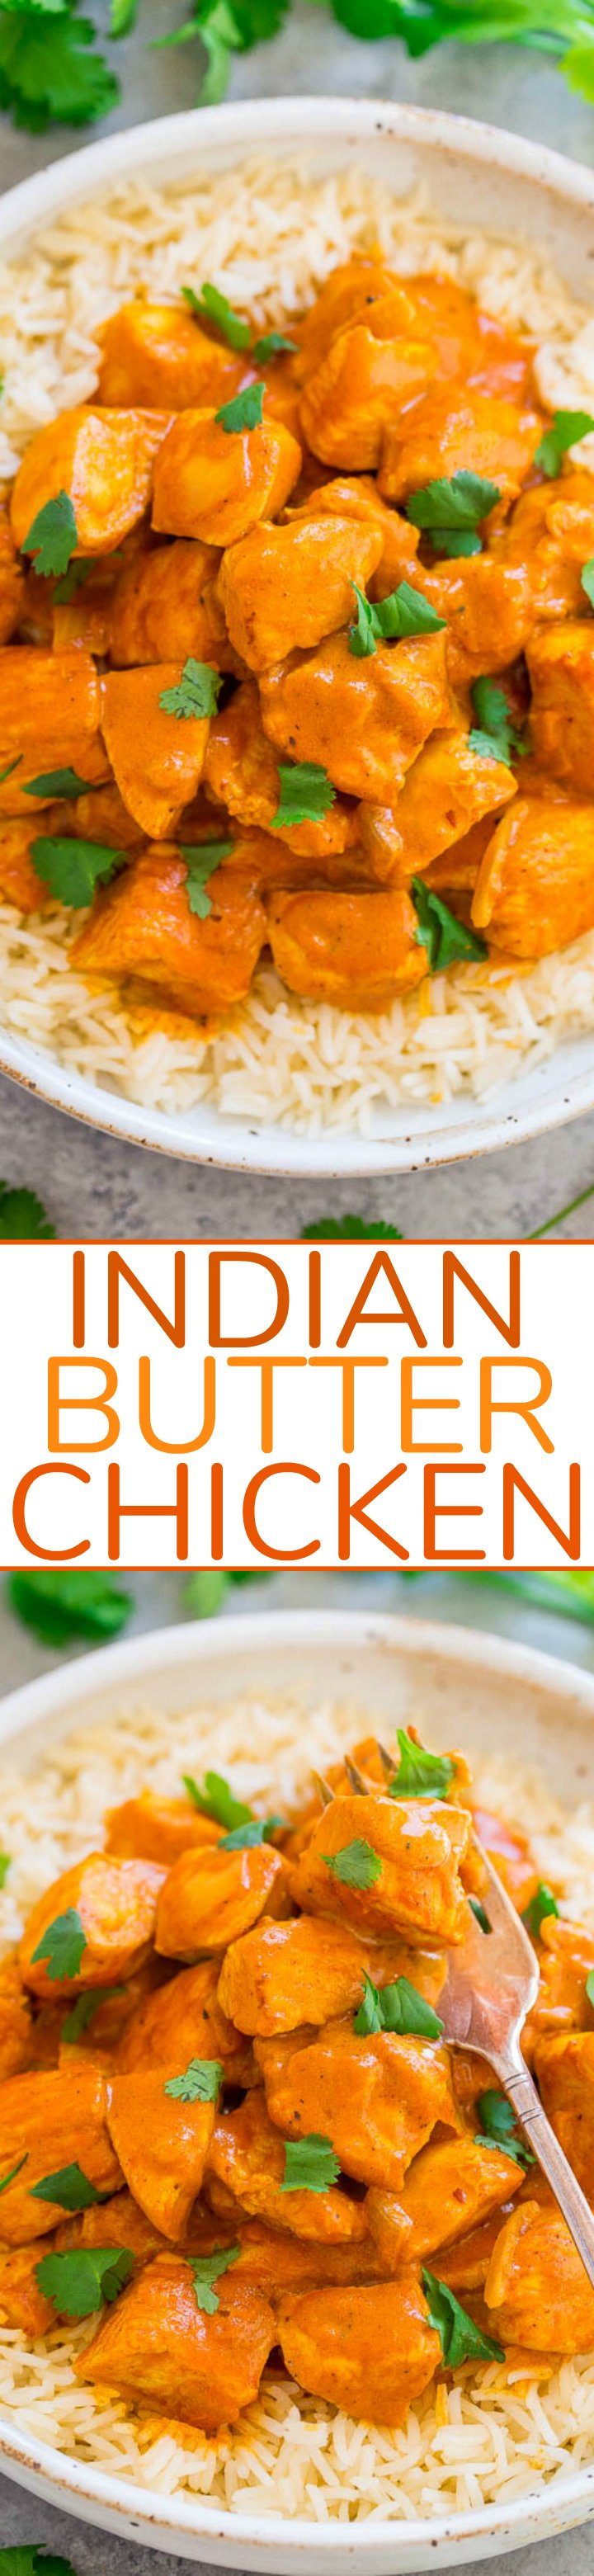 Indian Butter Chicken - An EASY, ONE-POT recipe for a classic Indian favorite!! Juicy, BUTTERY chicken simmered in a CREAMY tomato-based sauce! Next time you're craving Indian food, you can make it yourself in 30 minutes!!